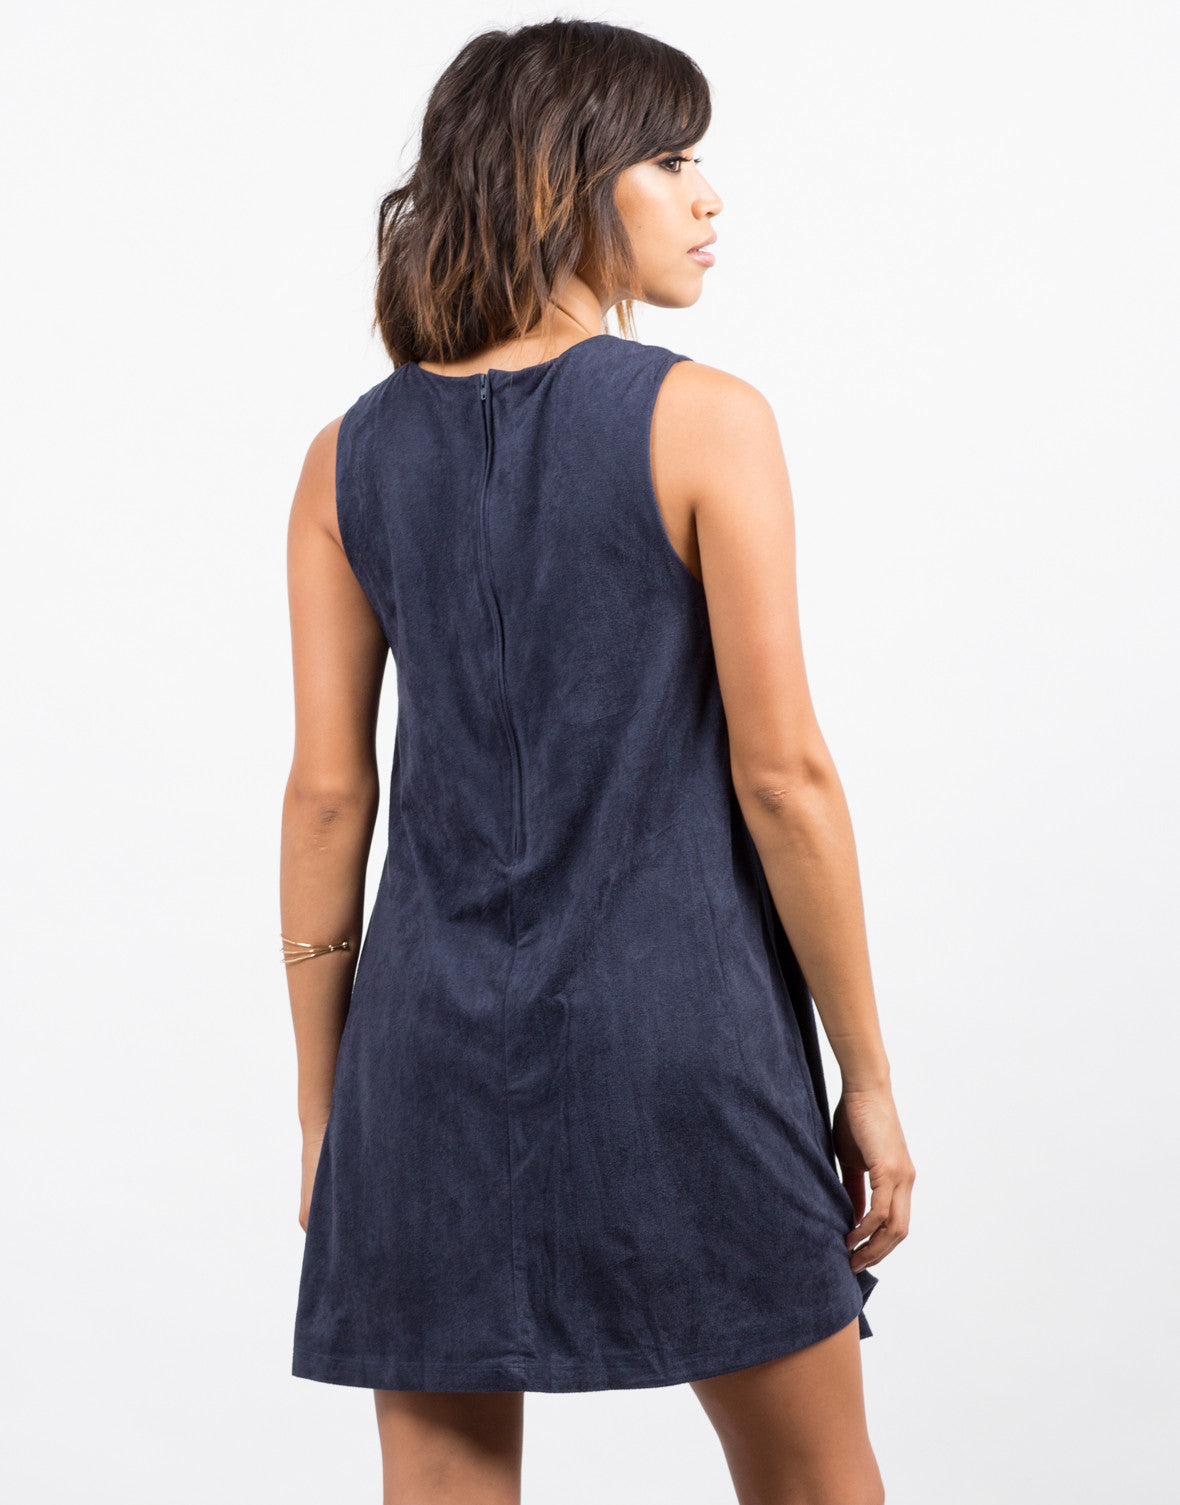 Back View of Suede Stitched Tank Dress